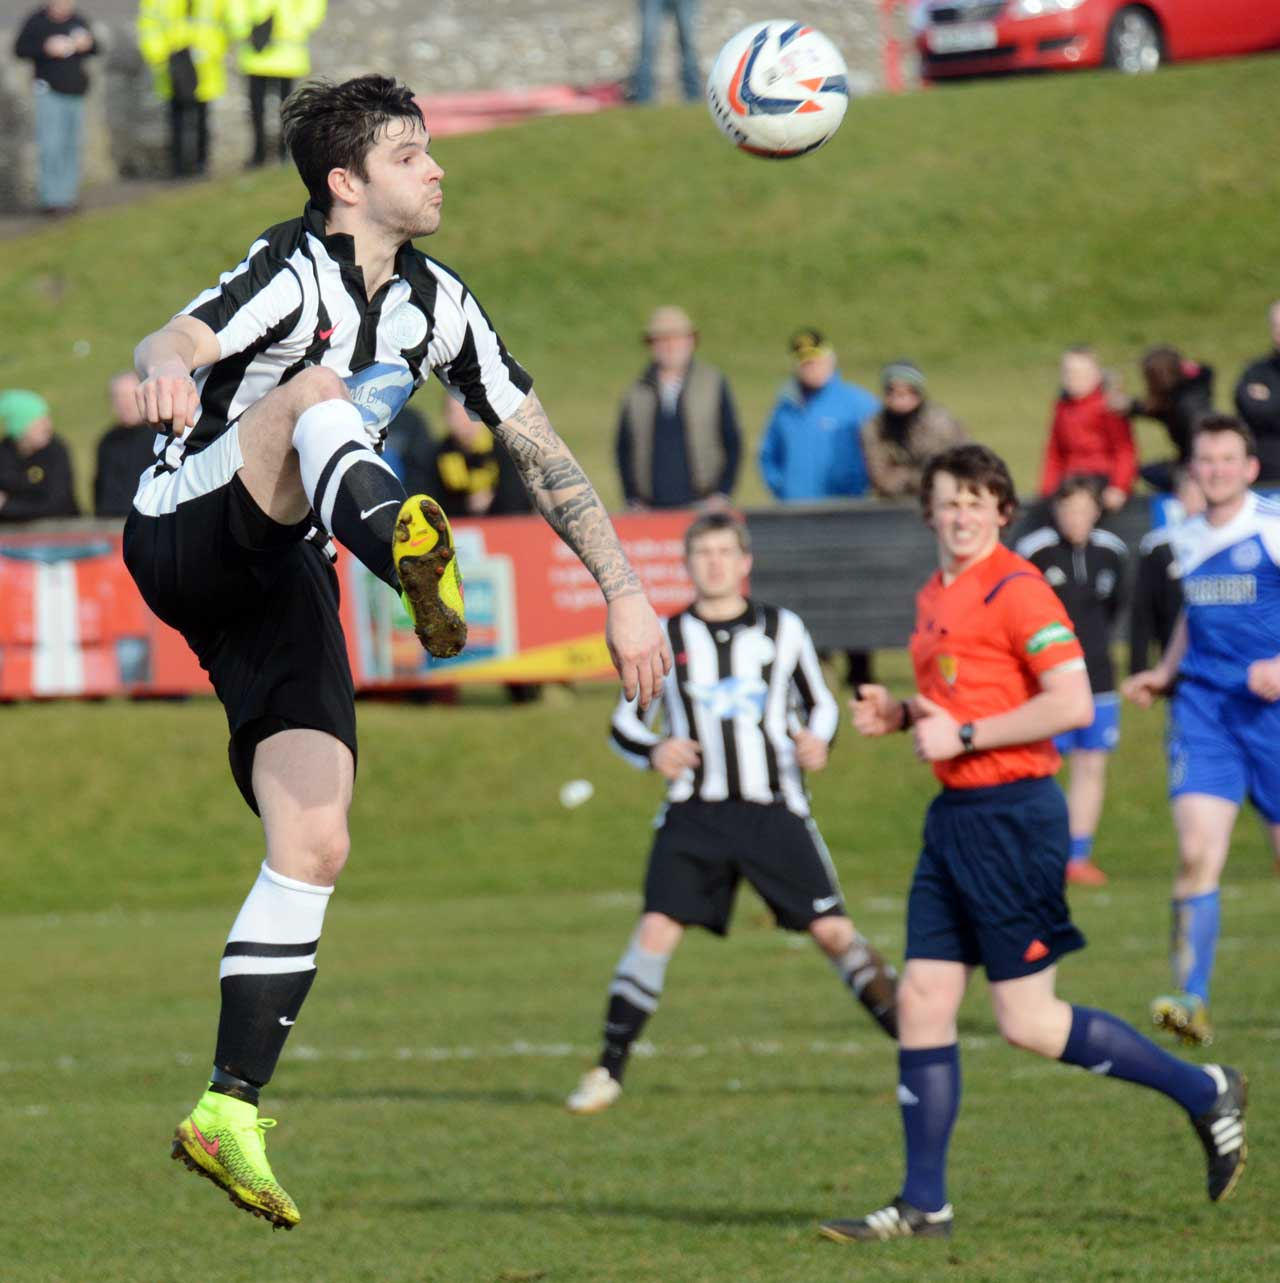 Photo: Highland League Cup semi final - Wick Academy 2 Nairn County 1